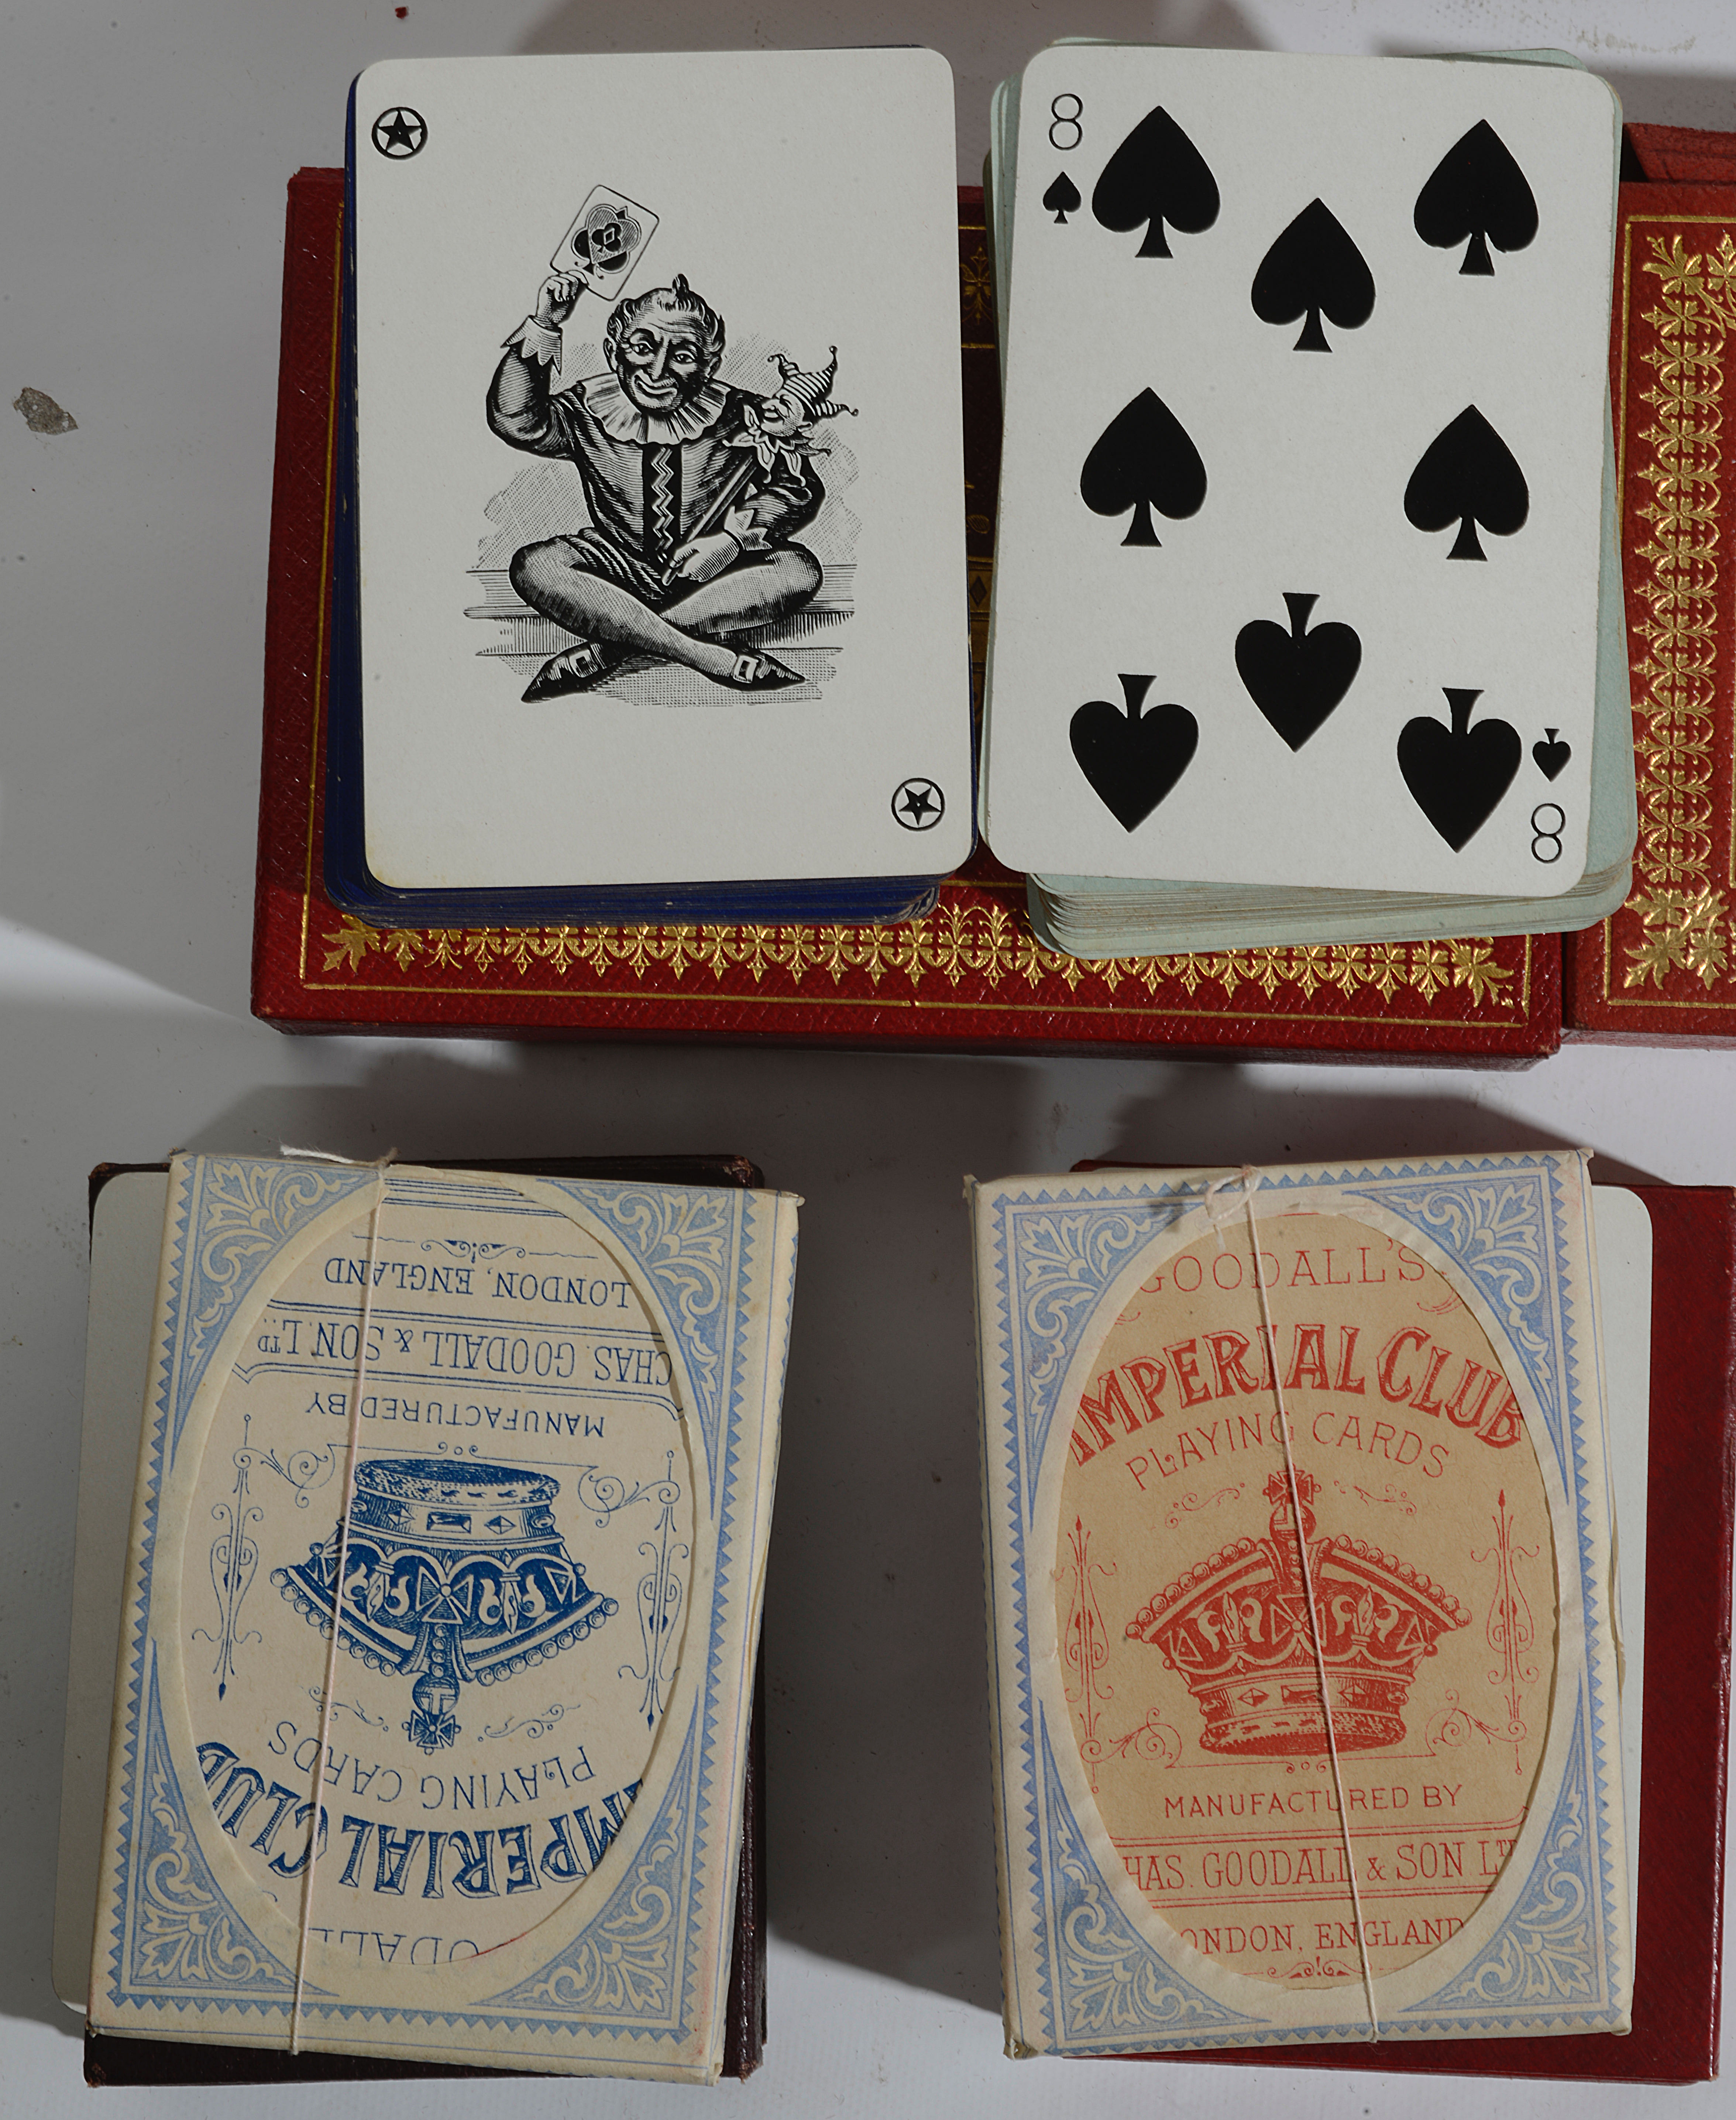 Lot 20 - Late Vict. and Ed. twin packs of playing cards by The Worshipful Company of Makers of Playing Cards